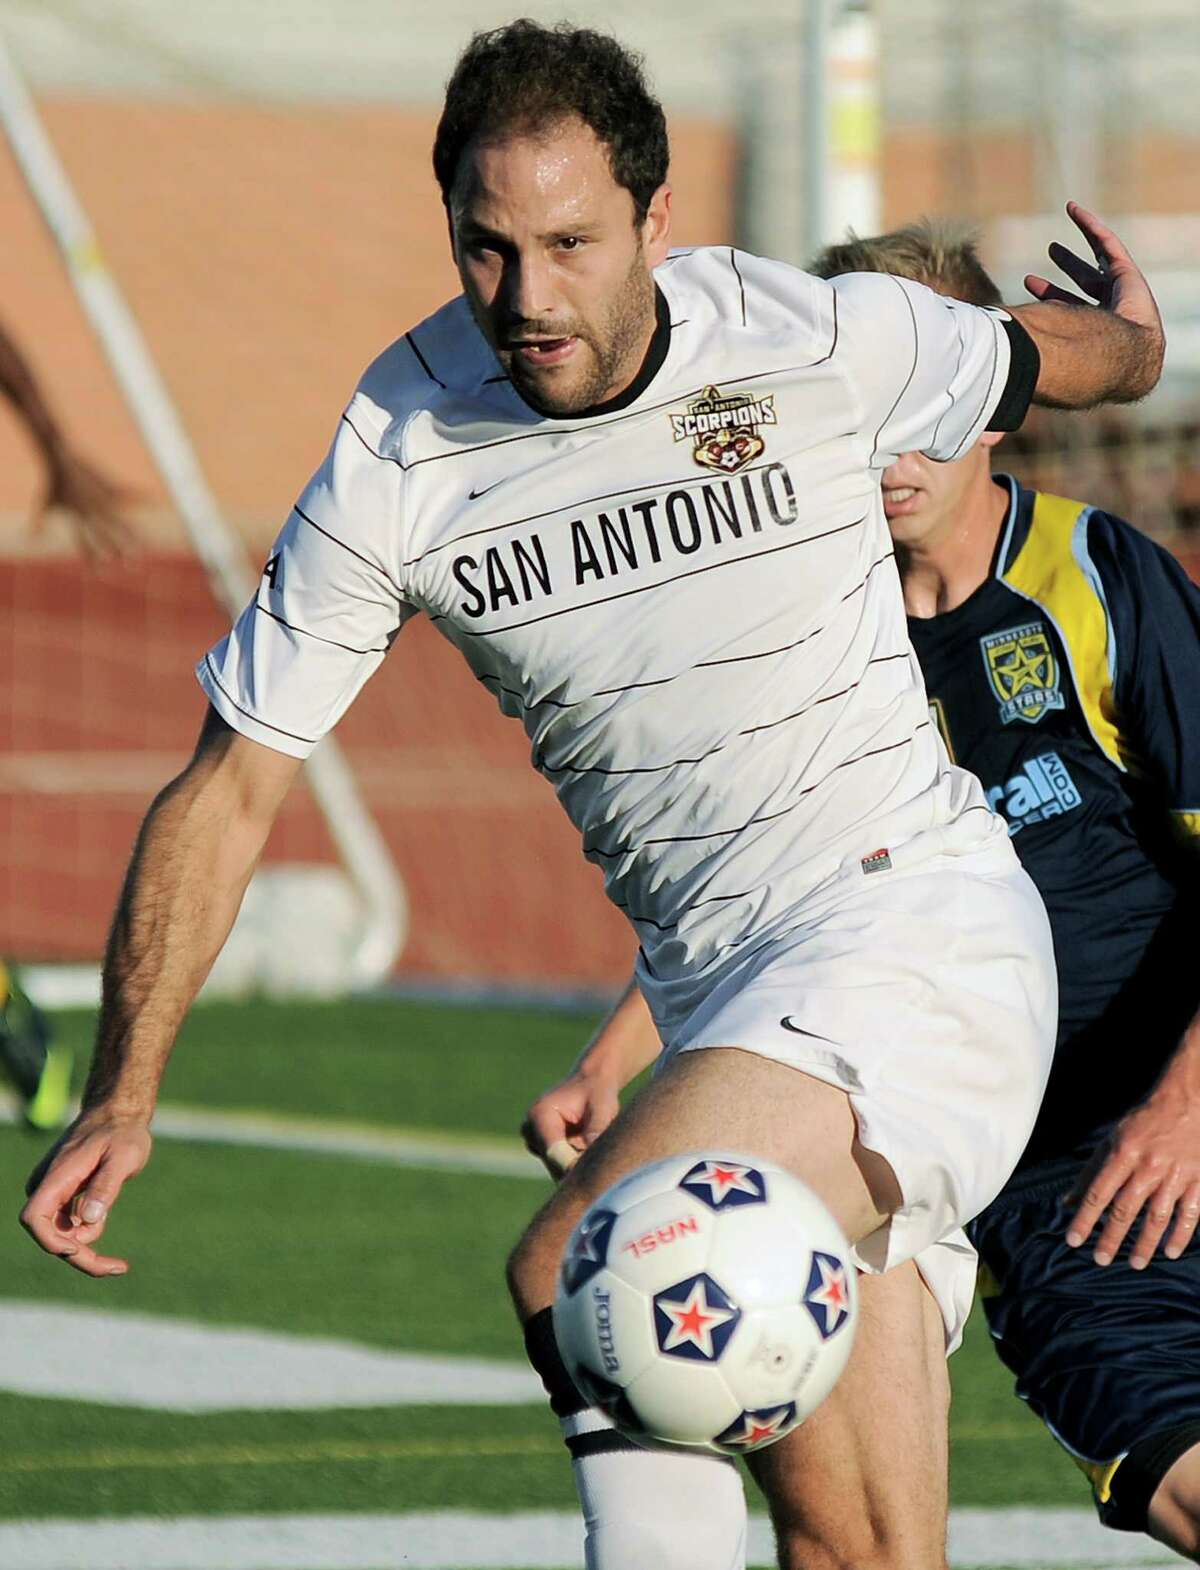 San Antonio Scorpions captain Kevin Harmse takes control of the ball ahead of Minnesota Stars' Nate Polak during an NASL soccer game, Sunday, Sept. 23, 2012, at Heroes Stadium in San Antonio. San Antonio and Minnesota tied 1-1.